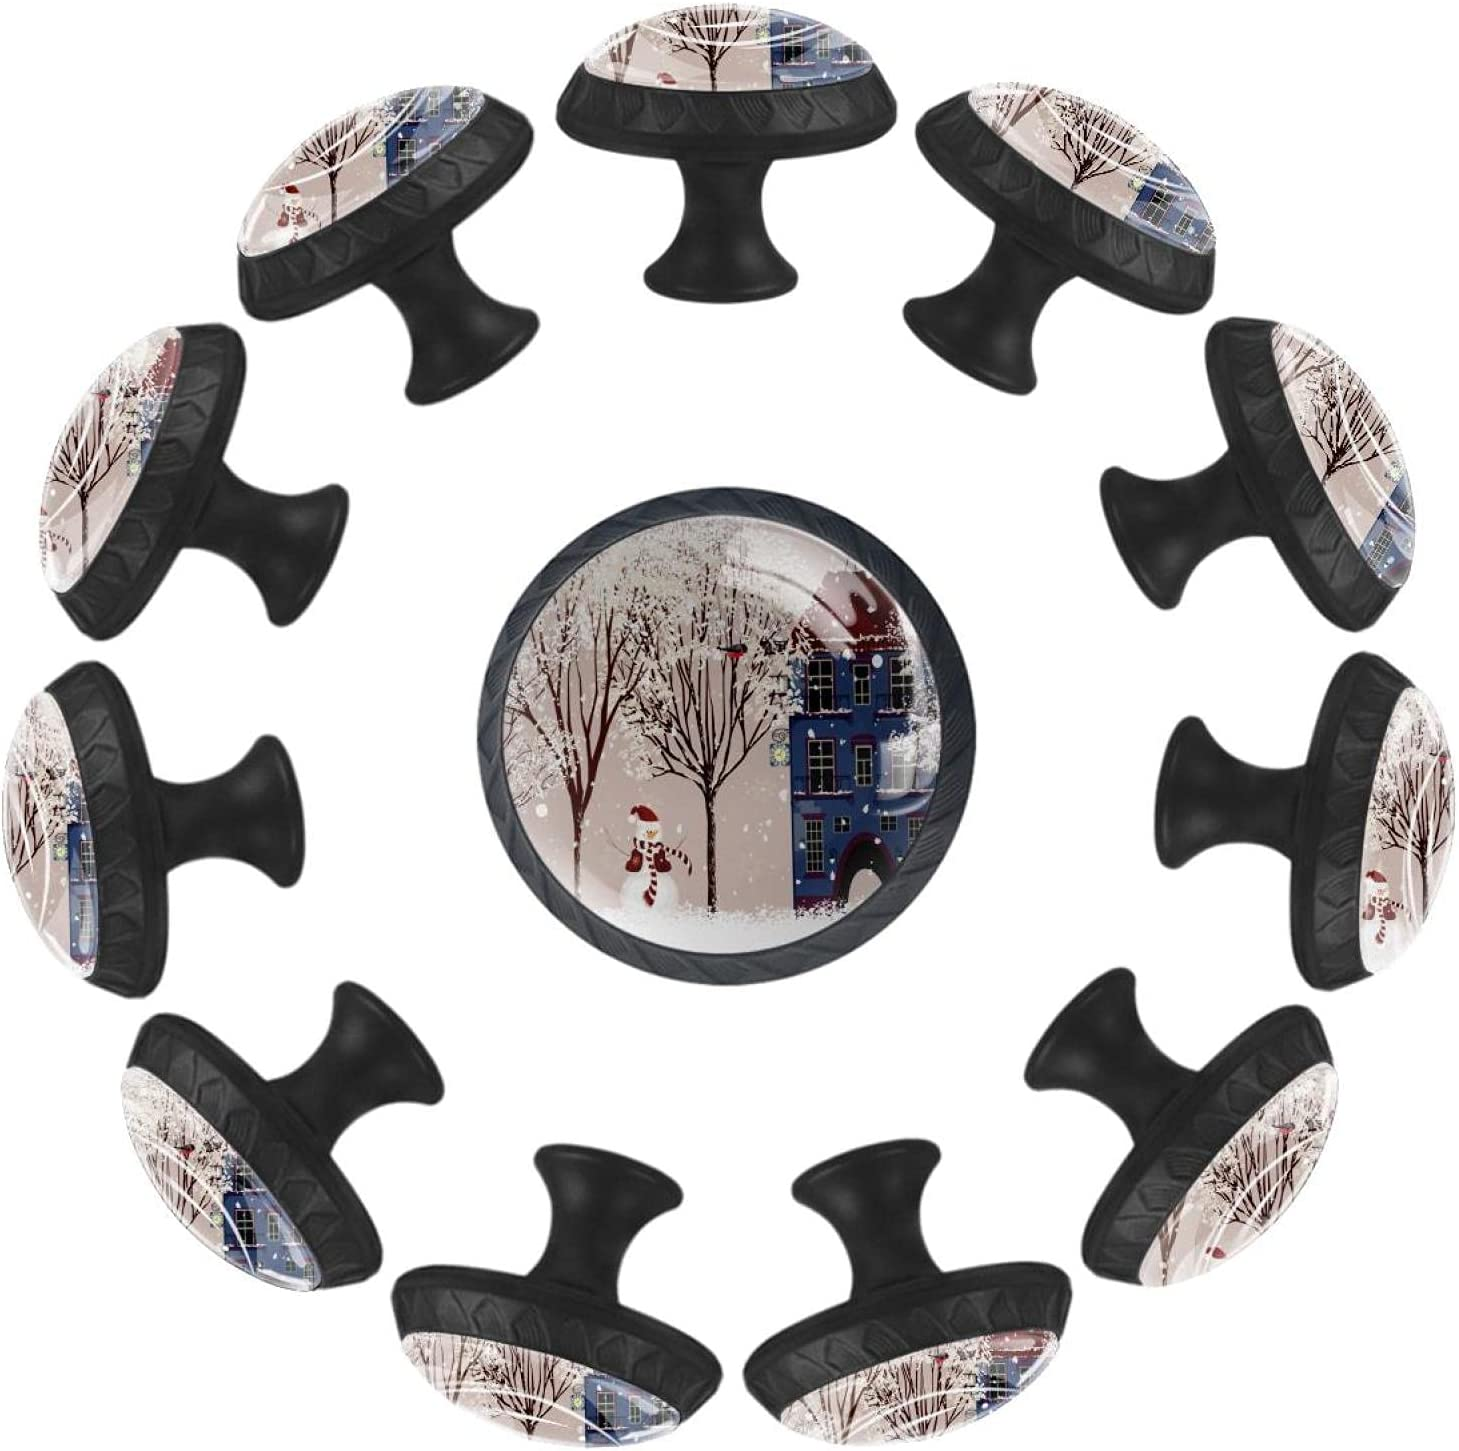 12 Max 47% OFF Charlotte Mall Packs Kitchen Cabinet Knobs Winter Tree Building Cart Snowman